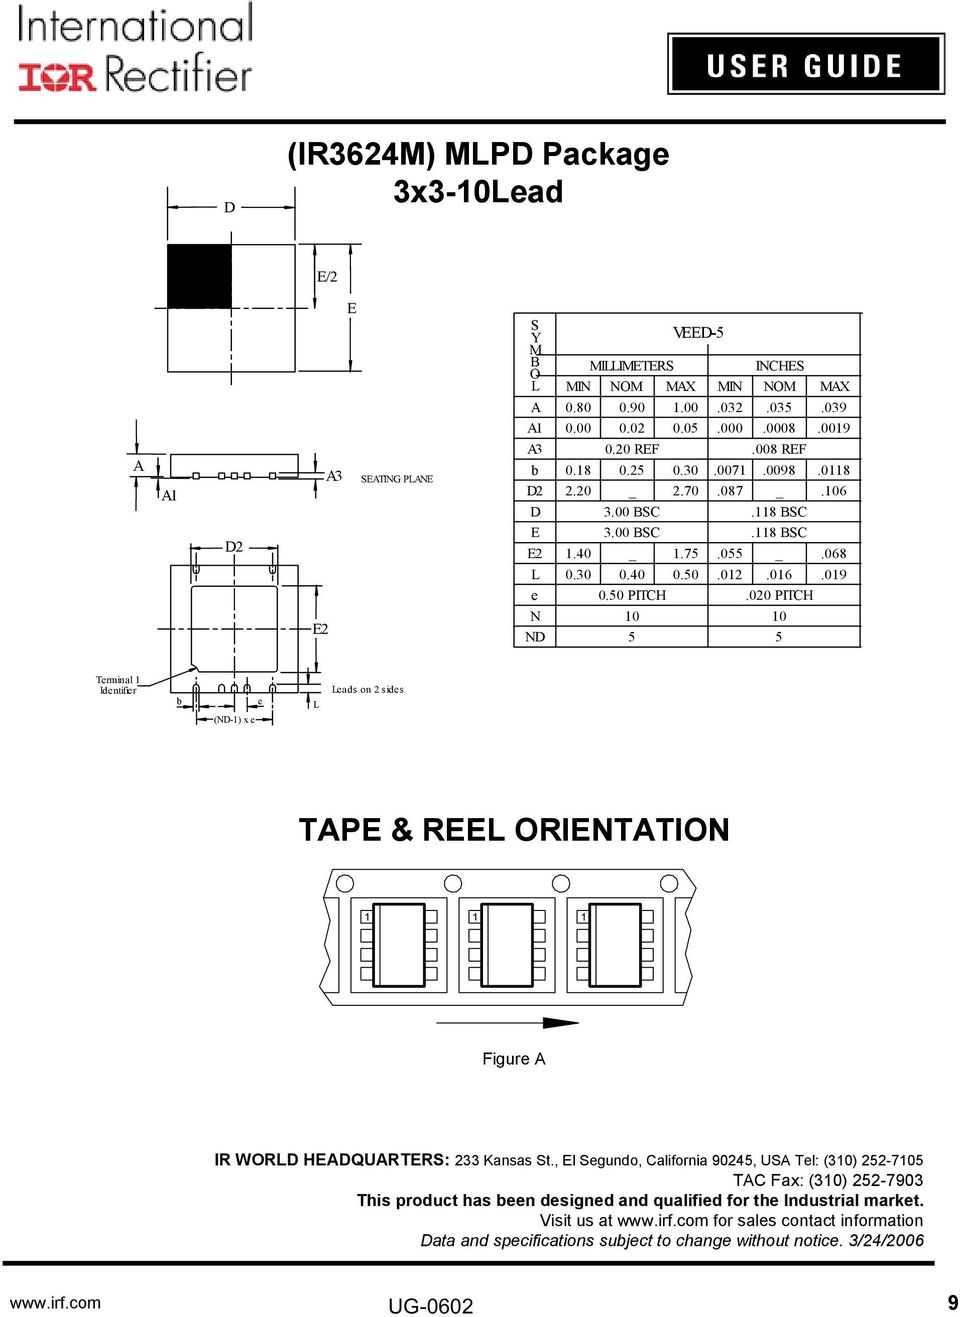 020 PITCH 10 10 5 5 Terminal 1 Identifier b (ND-1) x e e L Leads on 2 sides TAPE & REEL ORIENTATION 1 1 1 Figure A IR WORLD HEADQUARTERS: 233 Kansas St.